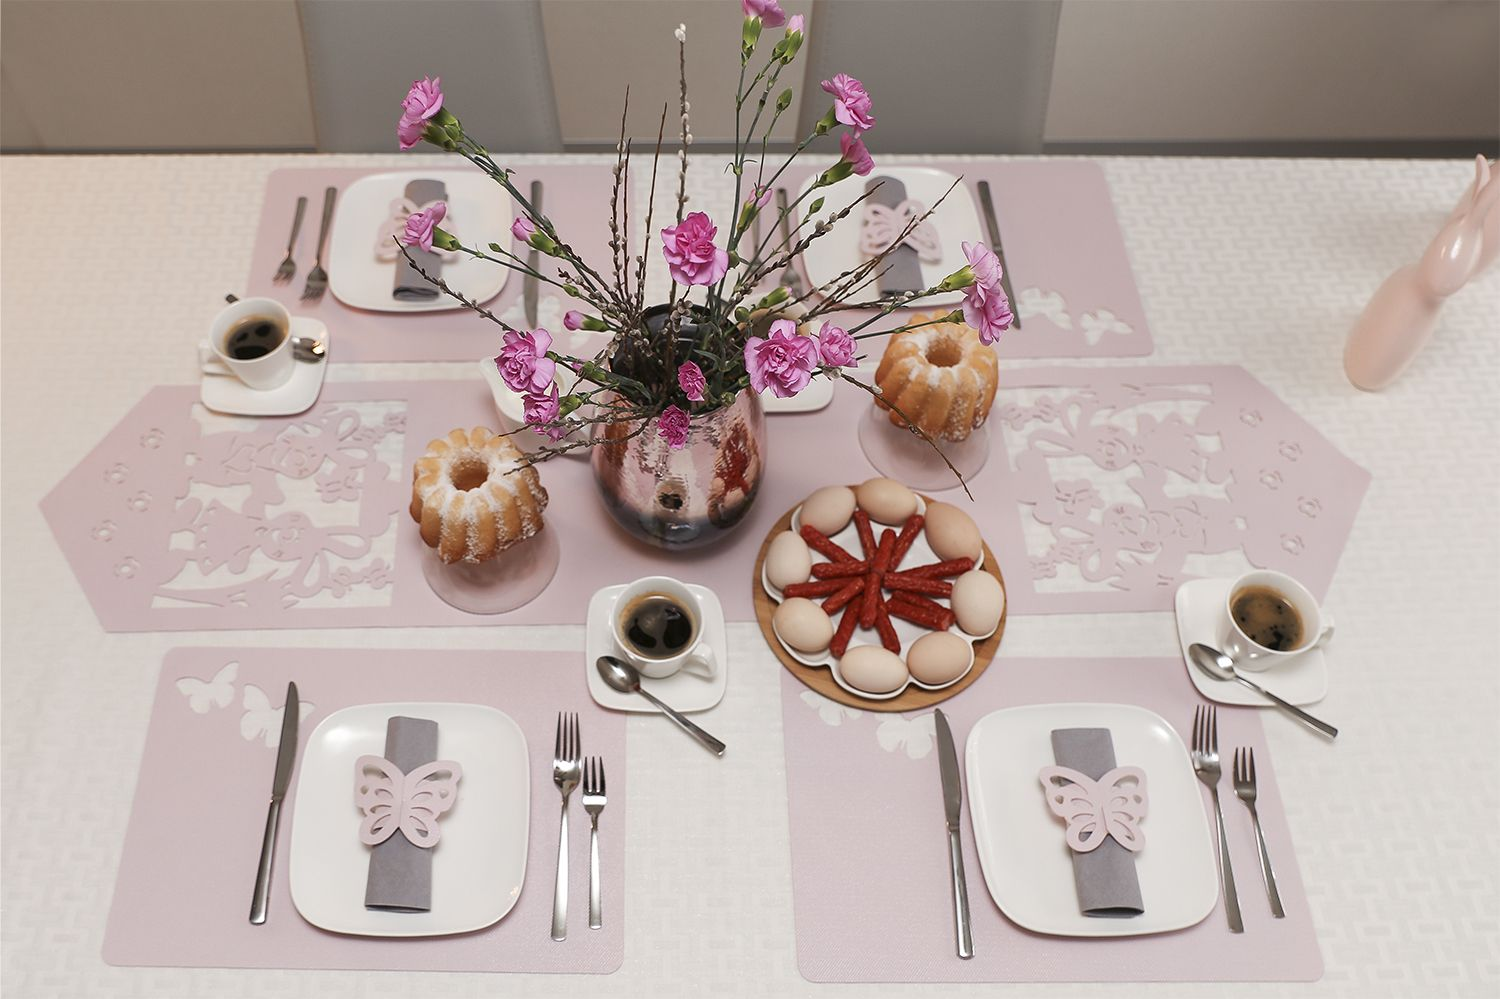 Wielkanocny Stol In 2020 Table Settings Decor Table Decorations